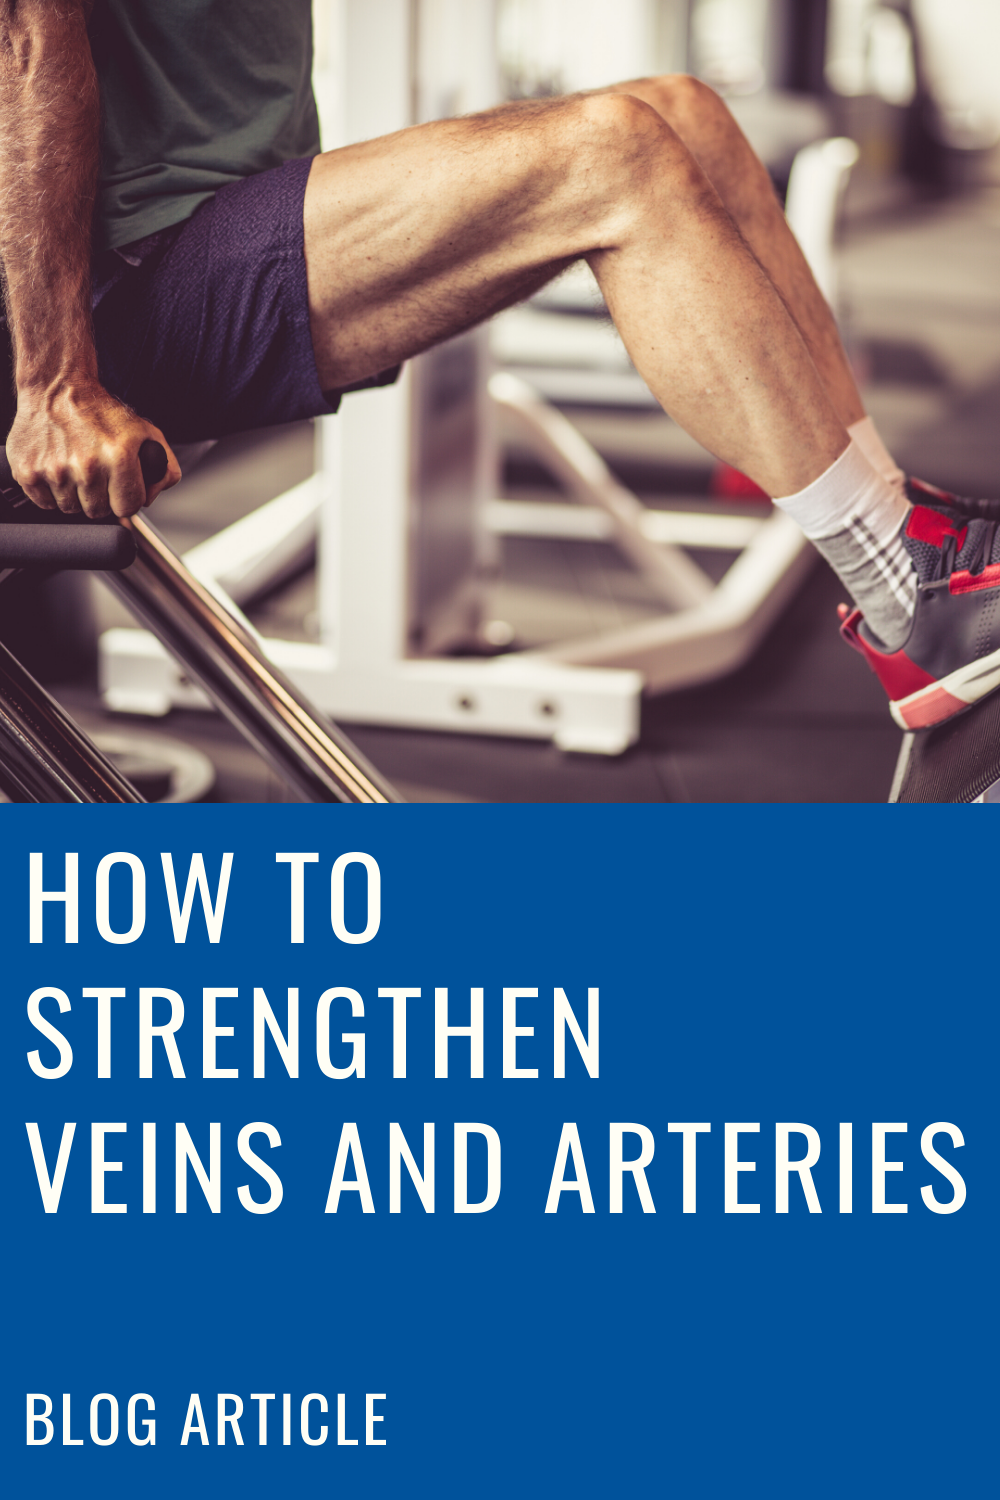 How To Strengthen Veins and Arteries